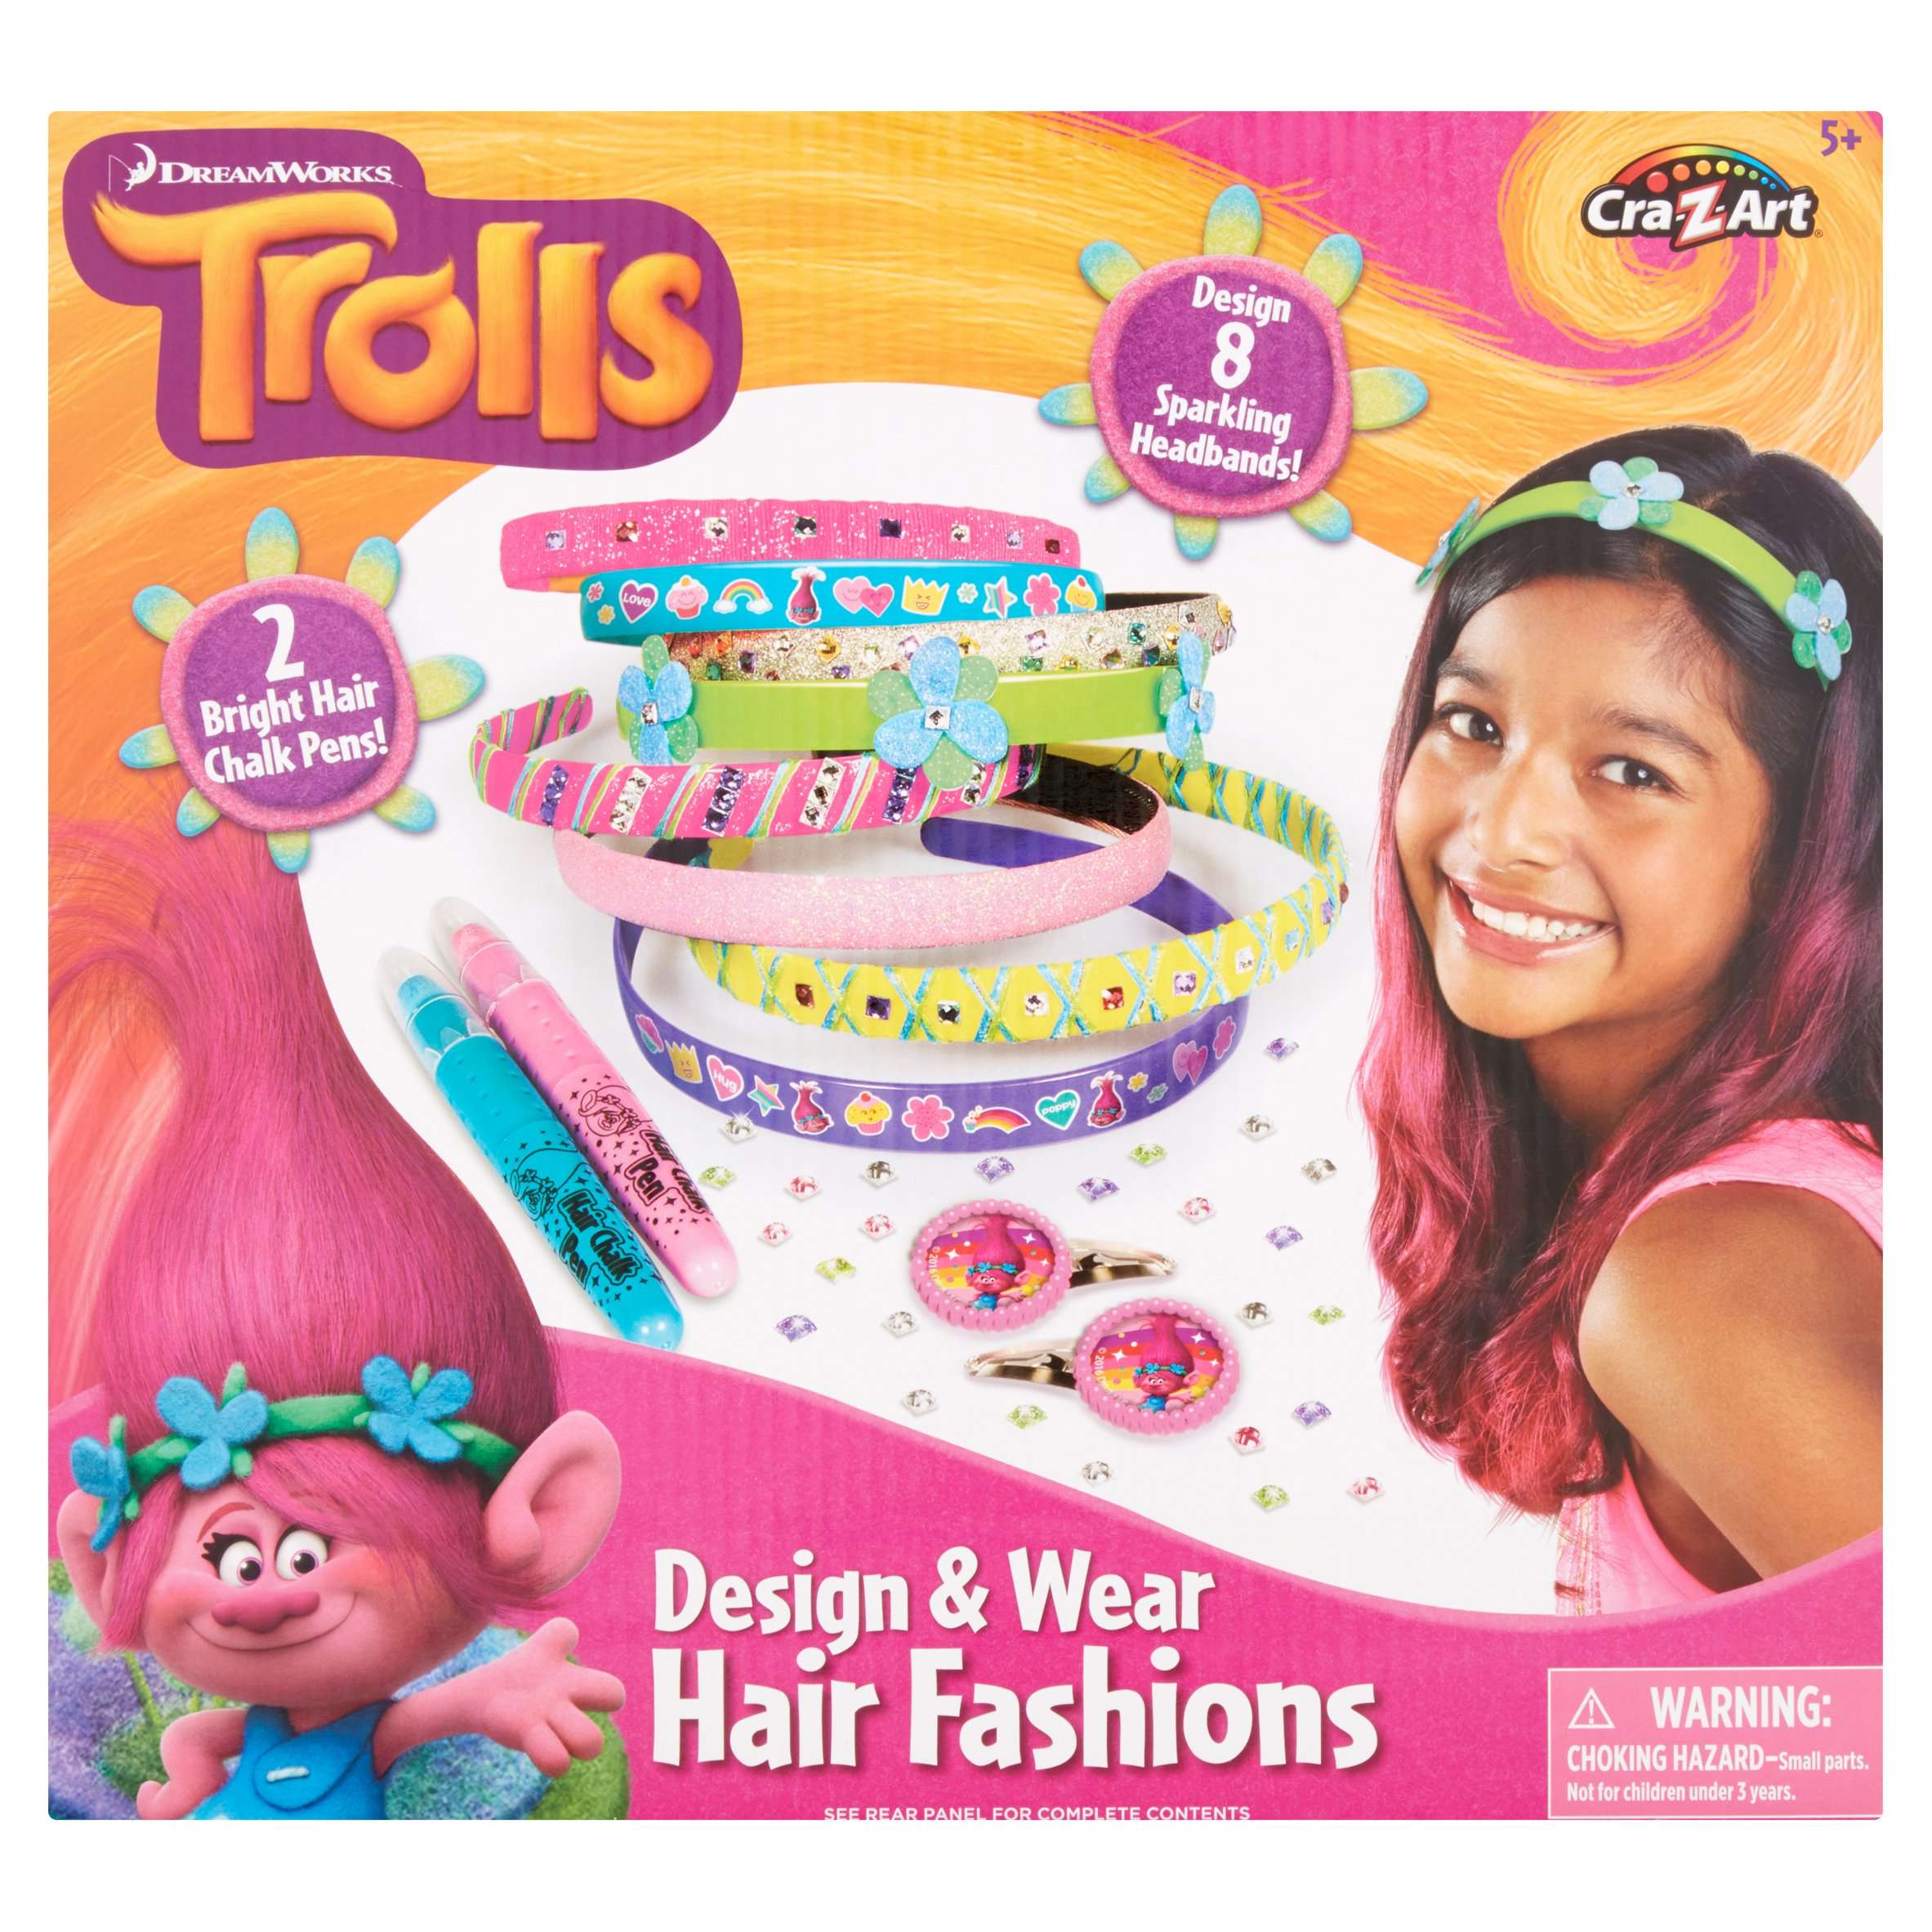 Cra-Z-Art Dreamworks Trolls Design & Wear Hair Fashions by Wal-Mart Stores, Inc.